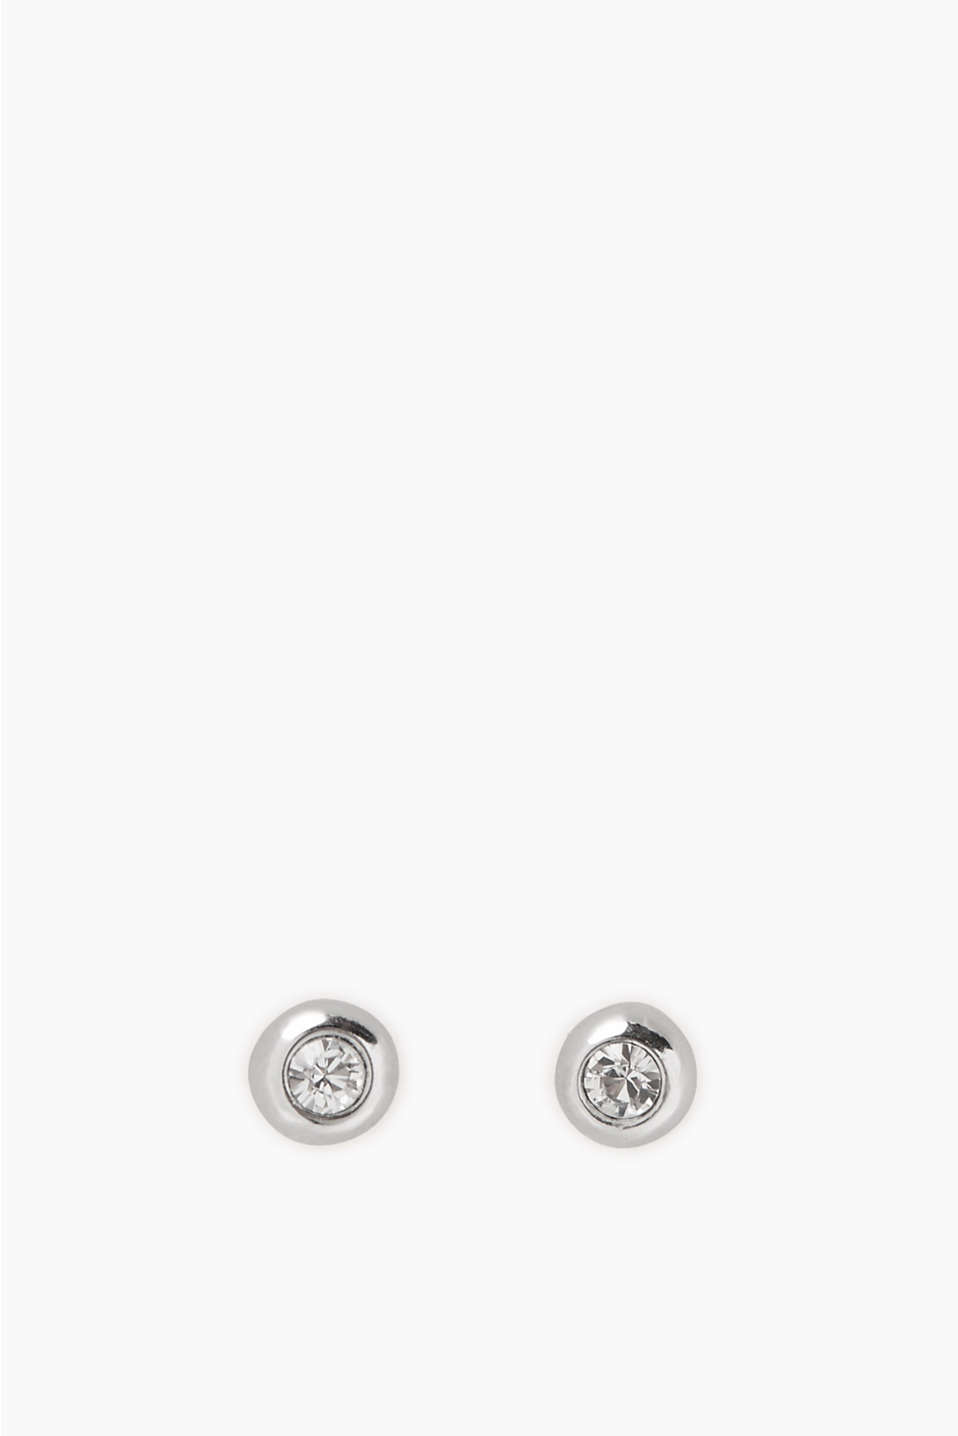 Pure elegance: classic stud earrings with zirconia stones, made of sterling silver